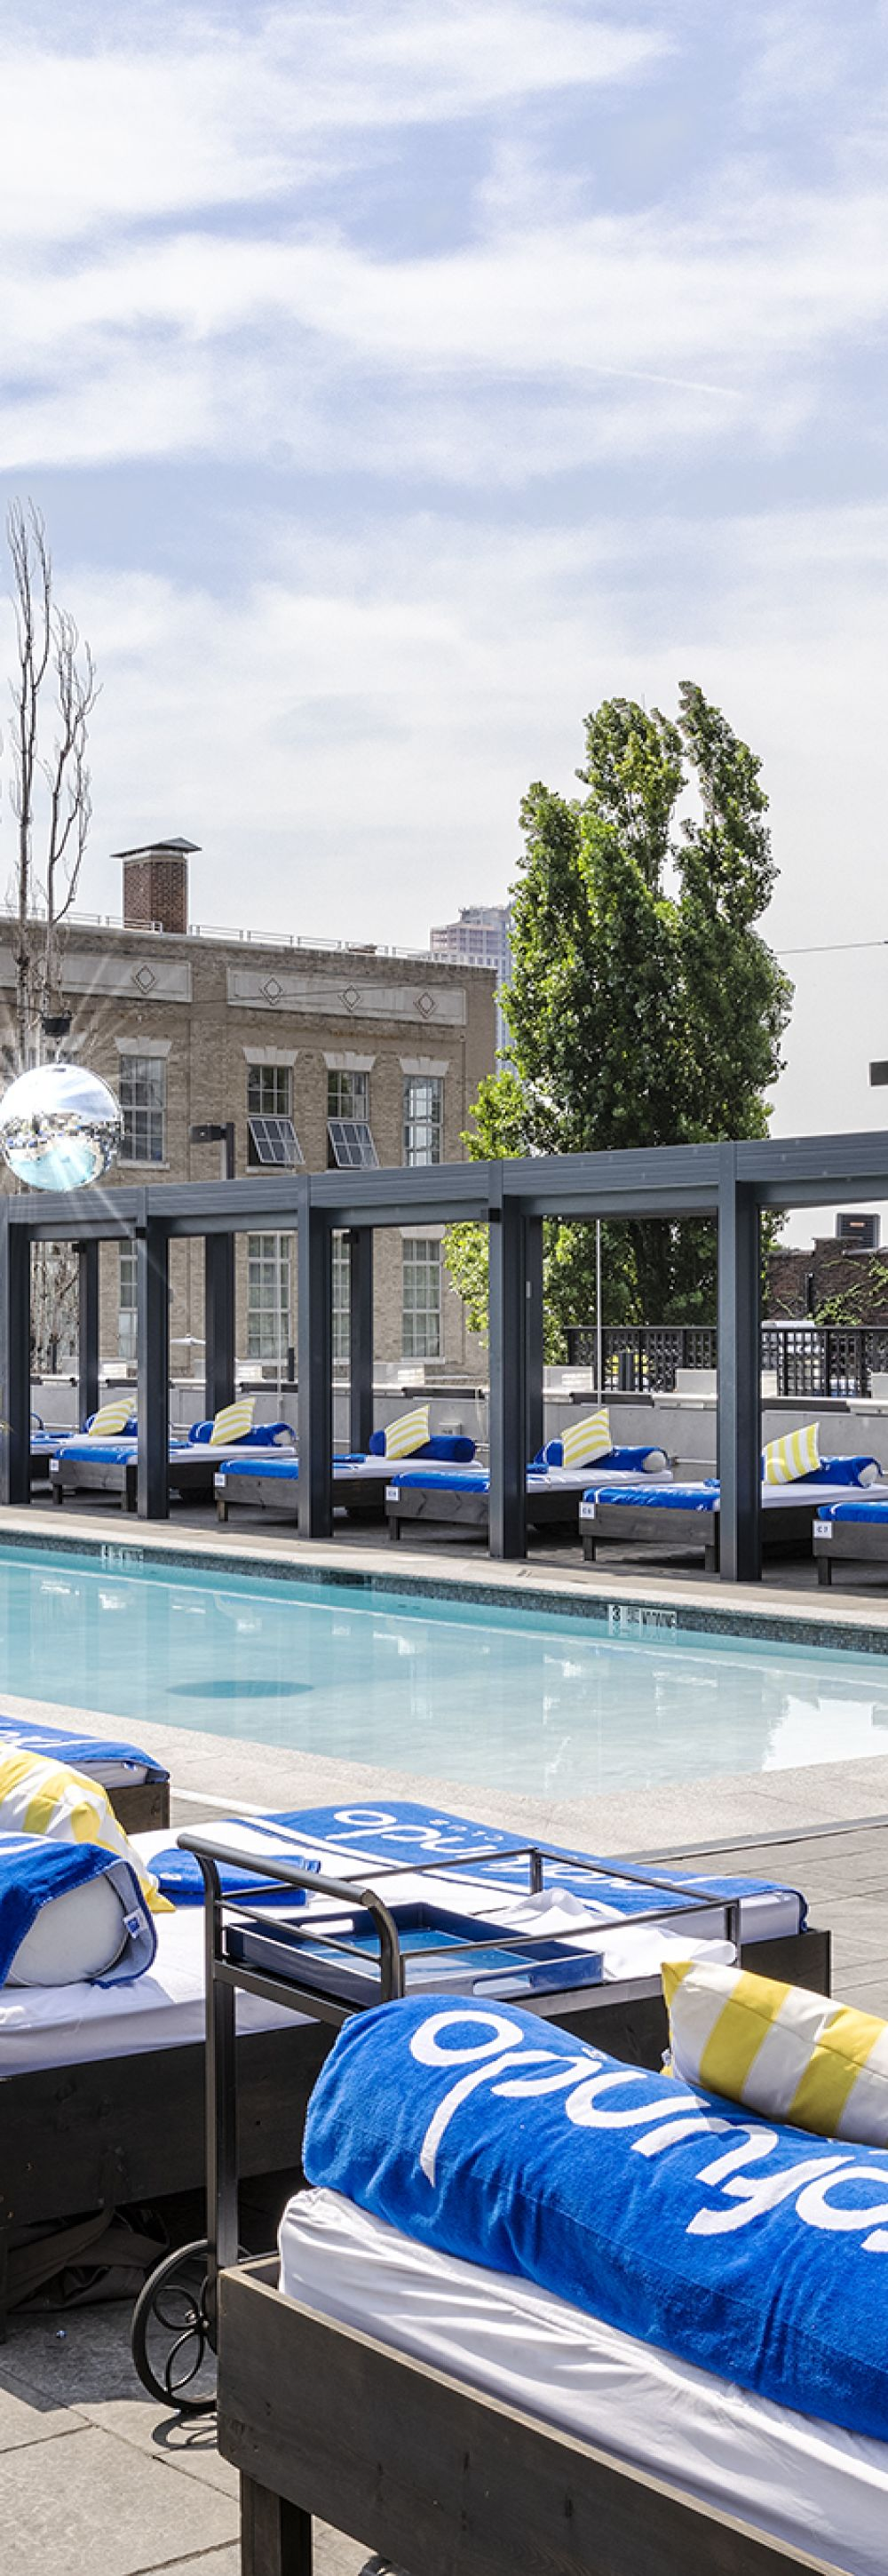 Side View of Lounge Chairs and Planters Surround the Rooftop Pool at Profundo Day Club in Ravel Hotel in LIC